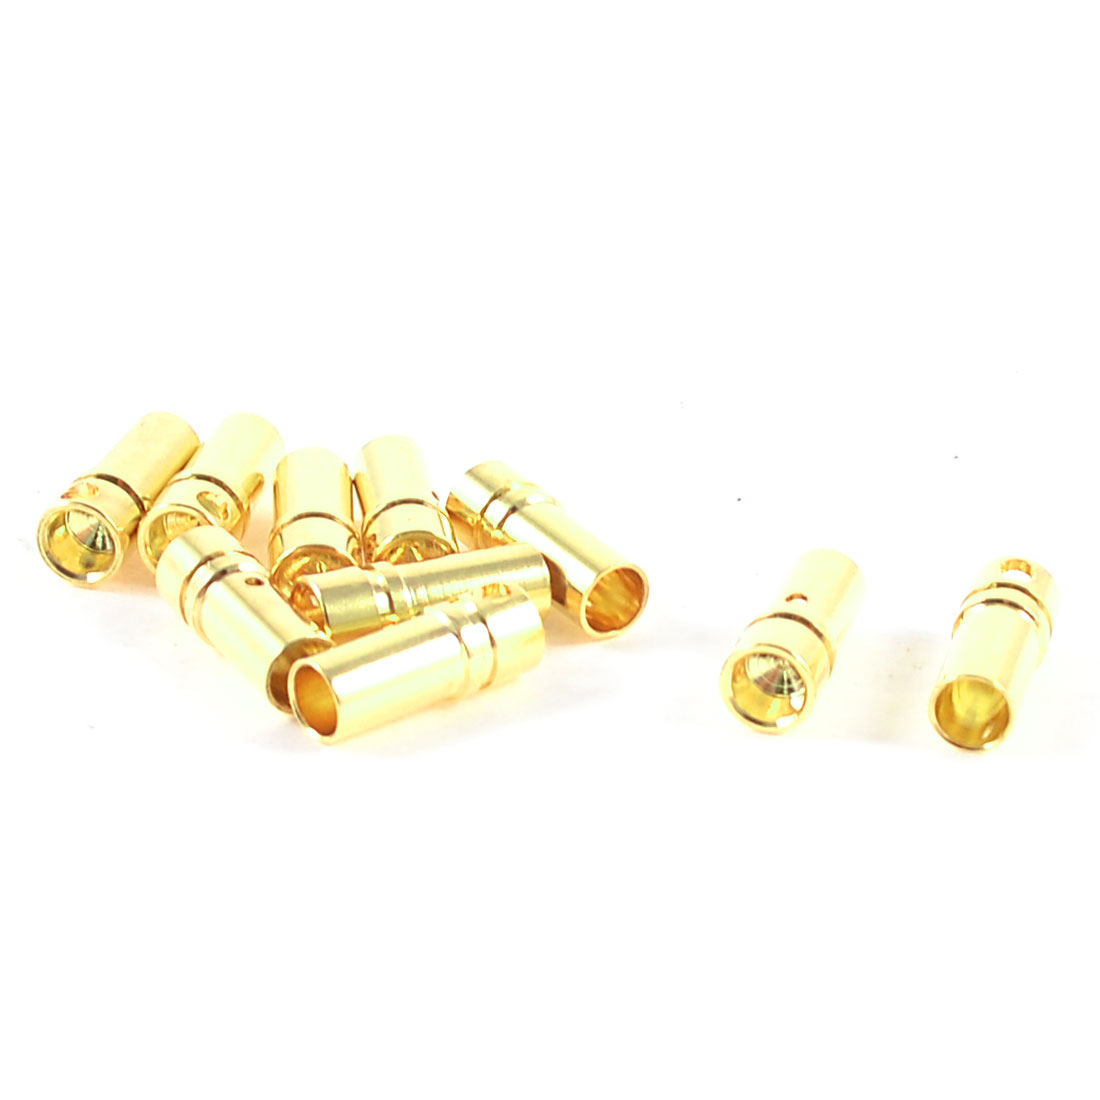 10 Pcs Gold Tone Metal RC Cone Plug Female Connector 3.5mm